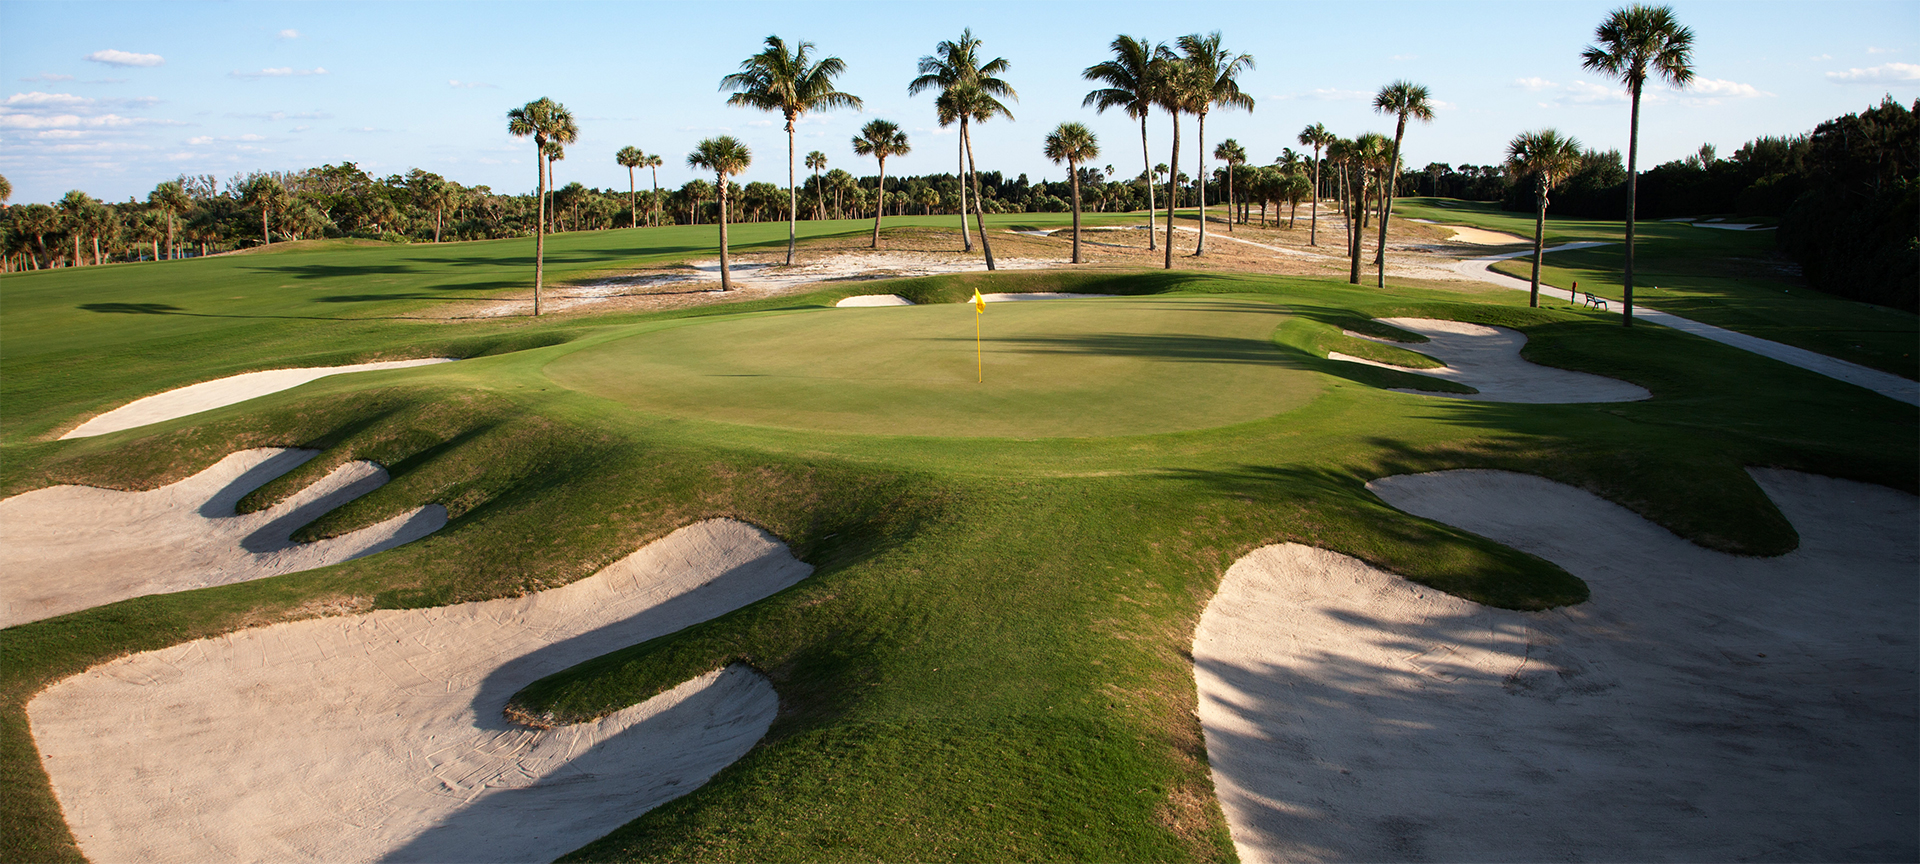 Donald Ross originally designed Seminole in the 1920s and it was the first outstanding golf course to be built in America's deepest South. Situated on the Atlantic side of Florida's coastline, Seminole Golf Club is considered by critics to be one of the finest examples of golf course routing. With small greens and serious trouble lurking beyond the flagstick, this is not a course to attack.